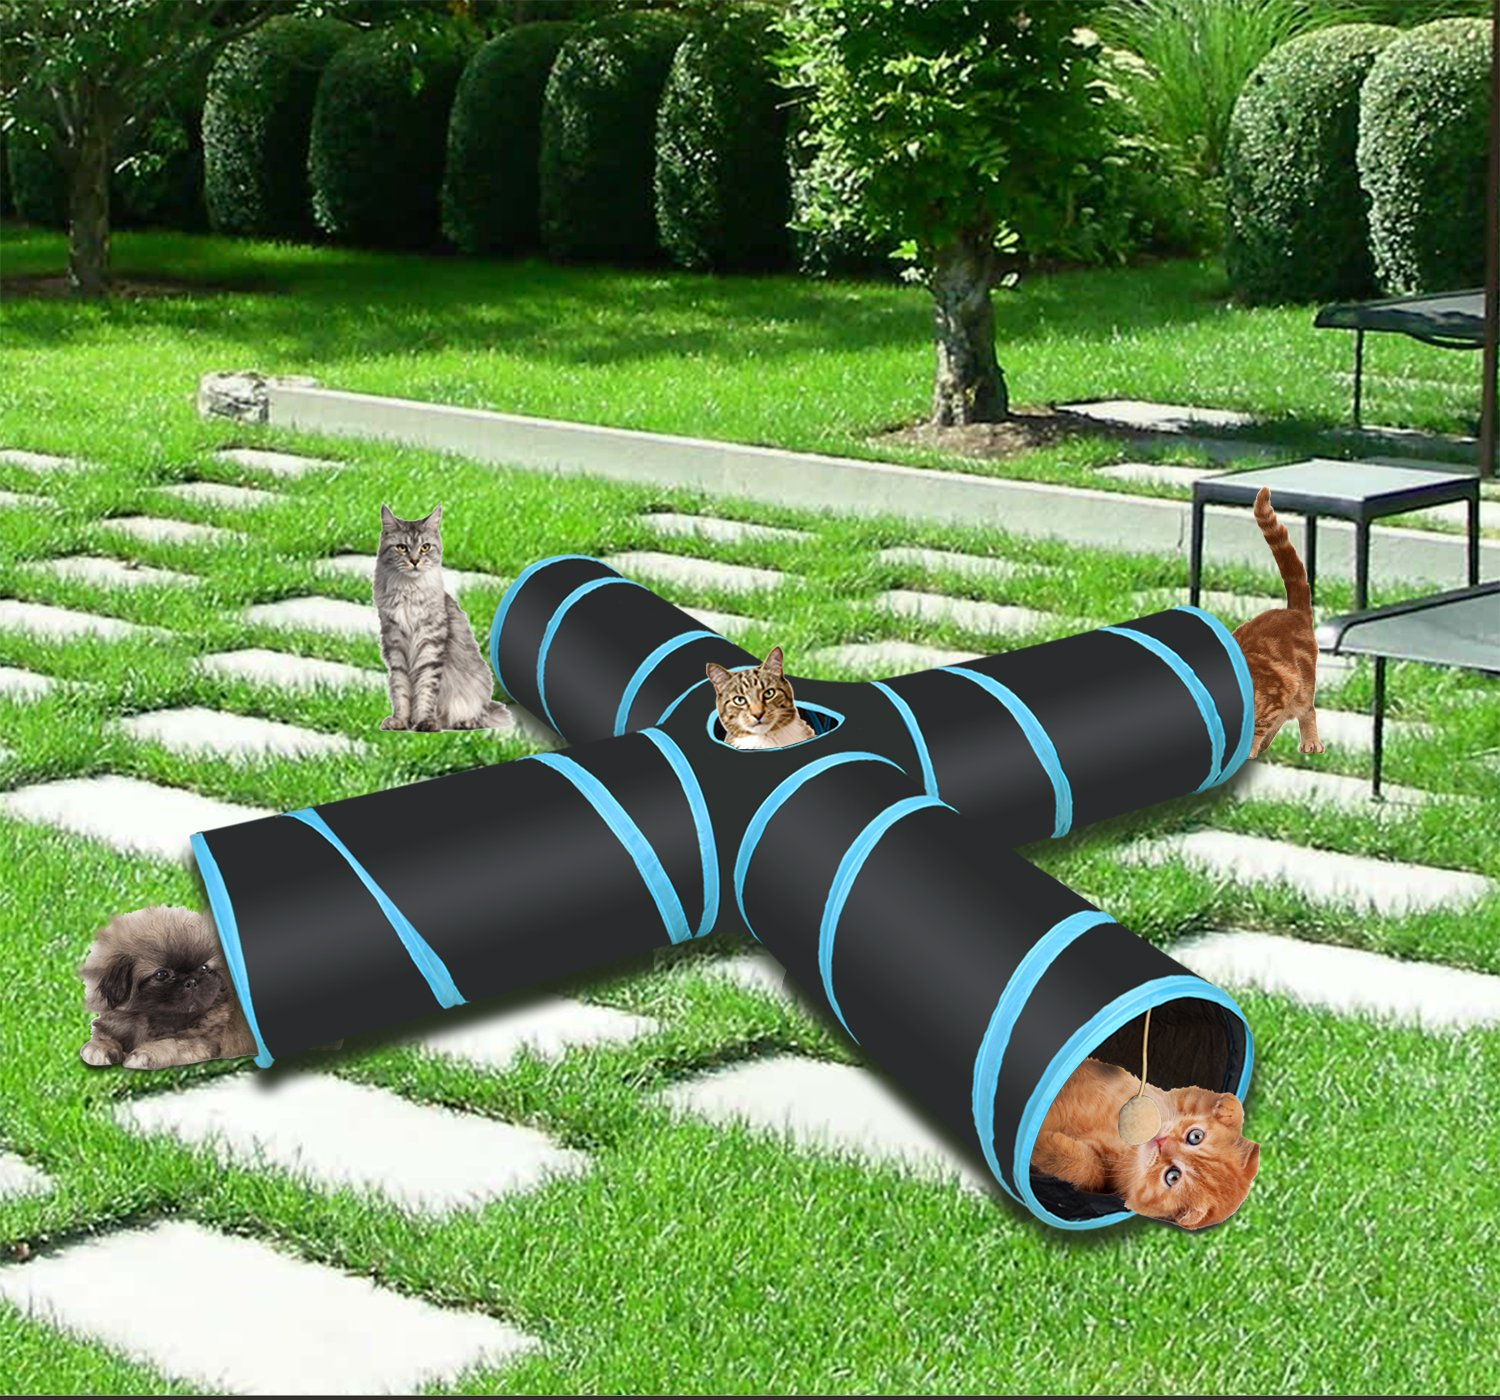 Pet Cat Tunnel, Cat Toys,Portable Tubes Collapsible, 4 Way Crinkle Cat Toy Cube&Storage Bag Catnip a Bell Toy for Large Cats Dogs Rabbits Indoor Outdoor Use by IKAAMA